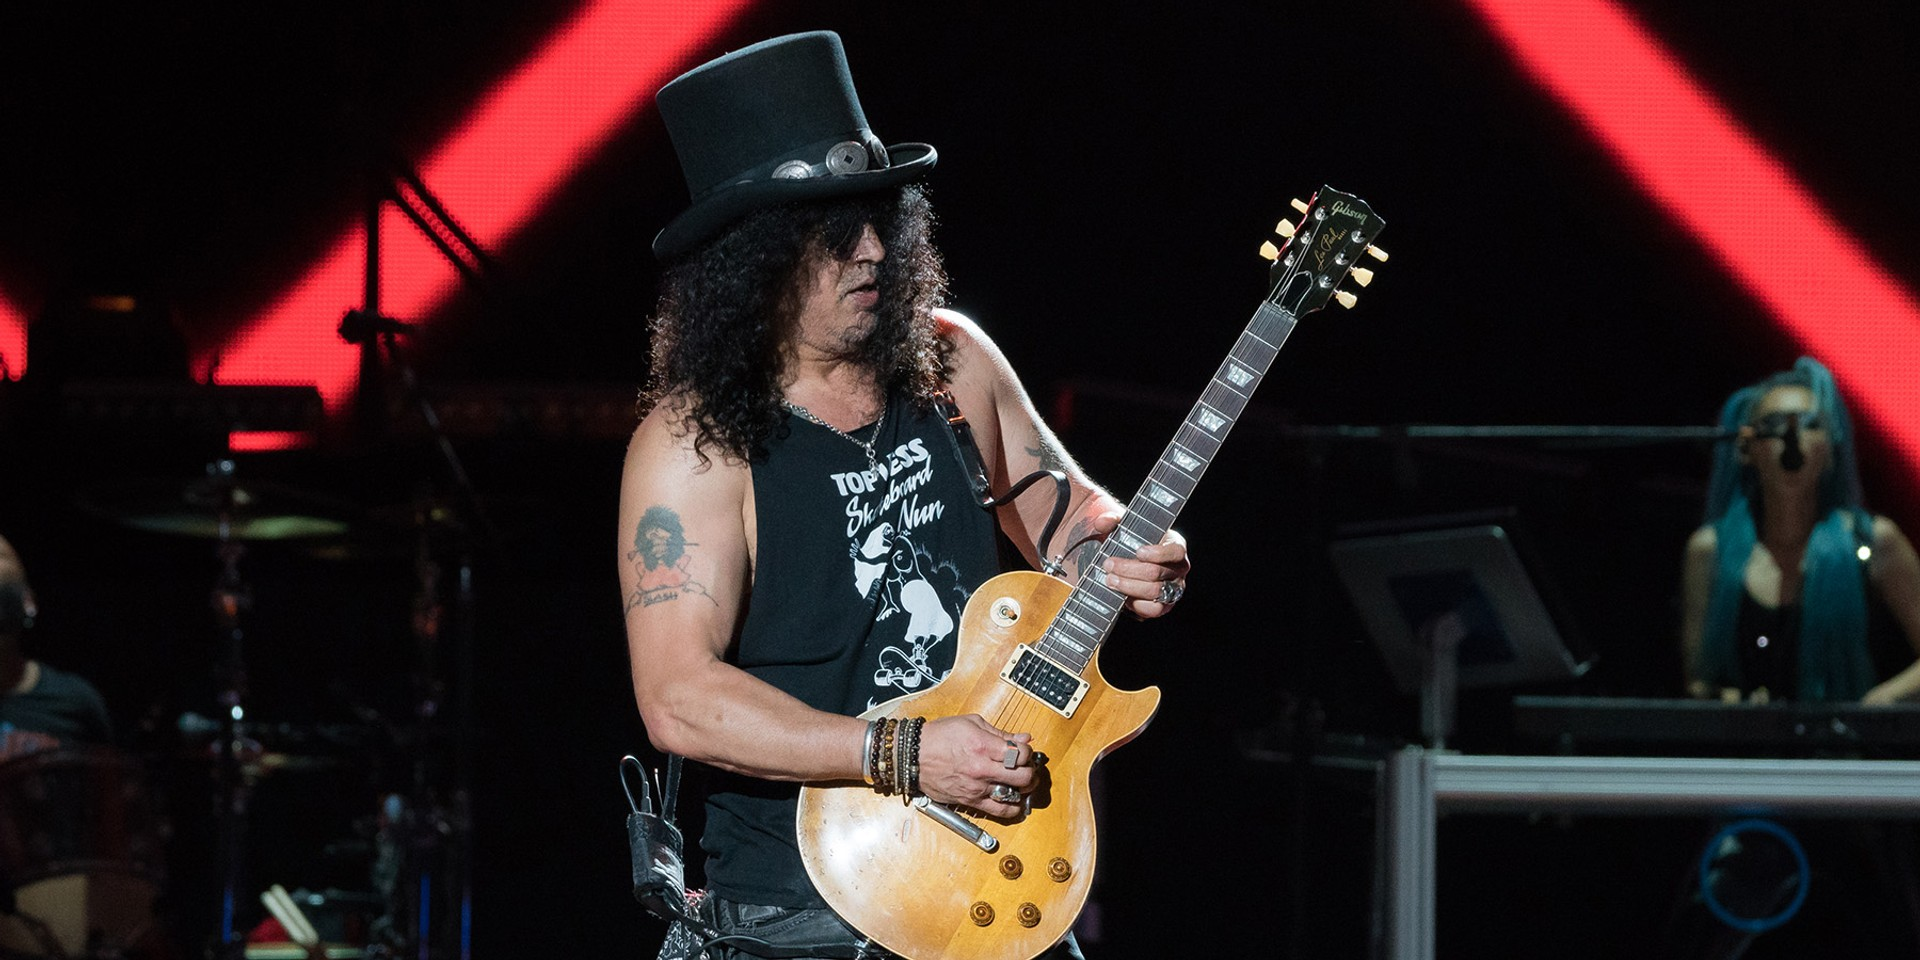 No one is sure when concertgoers will get RFID refunds from Guns N' Roses show